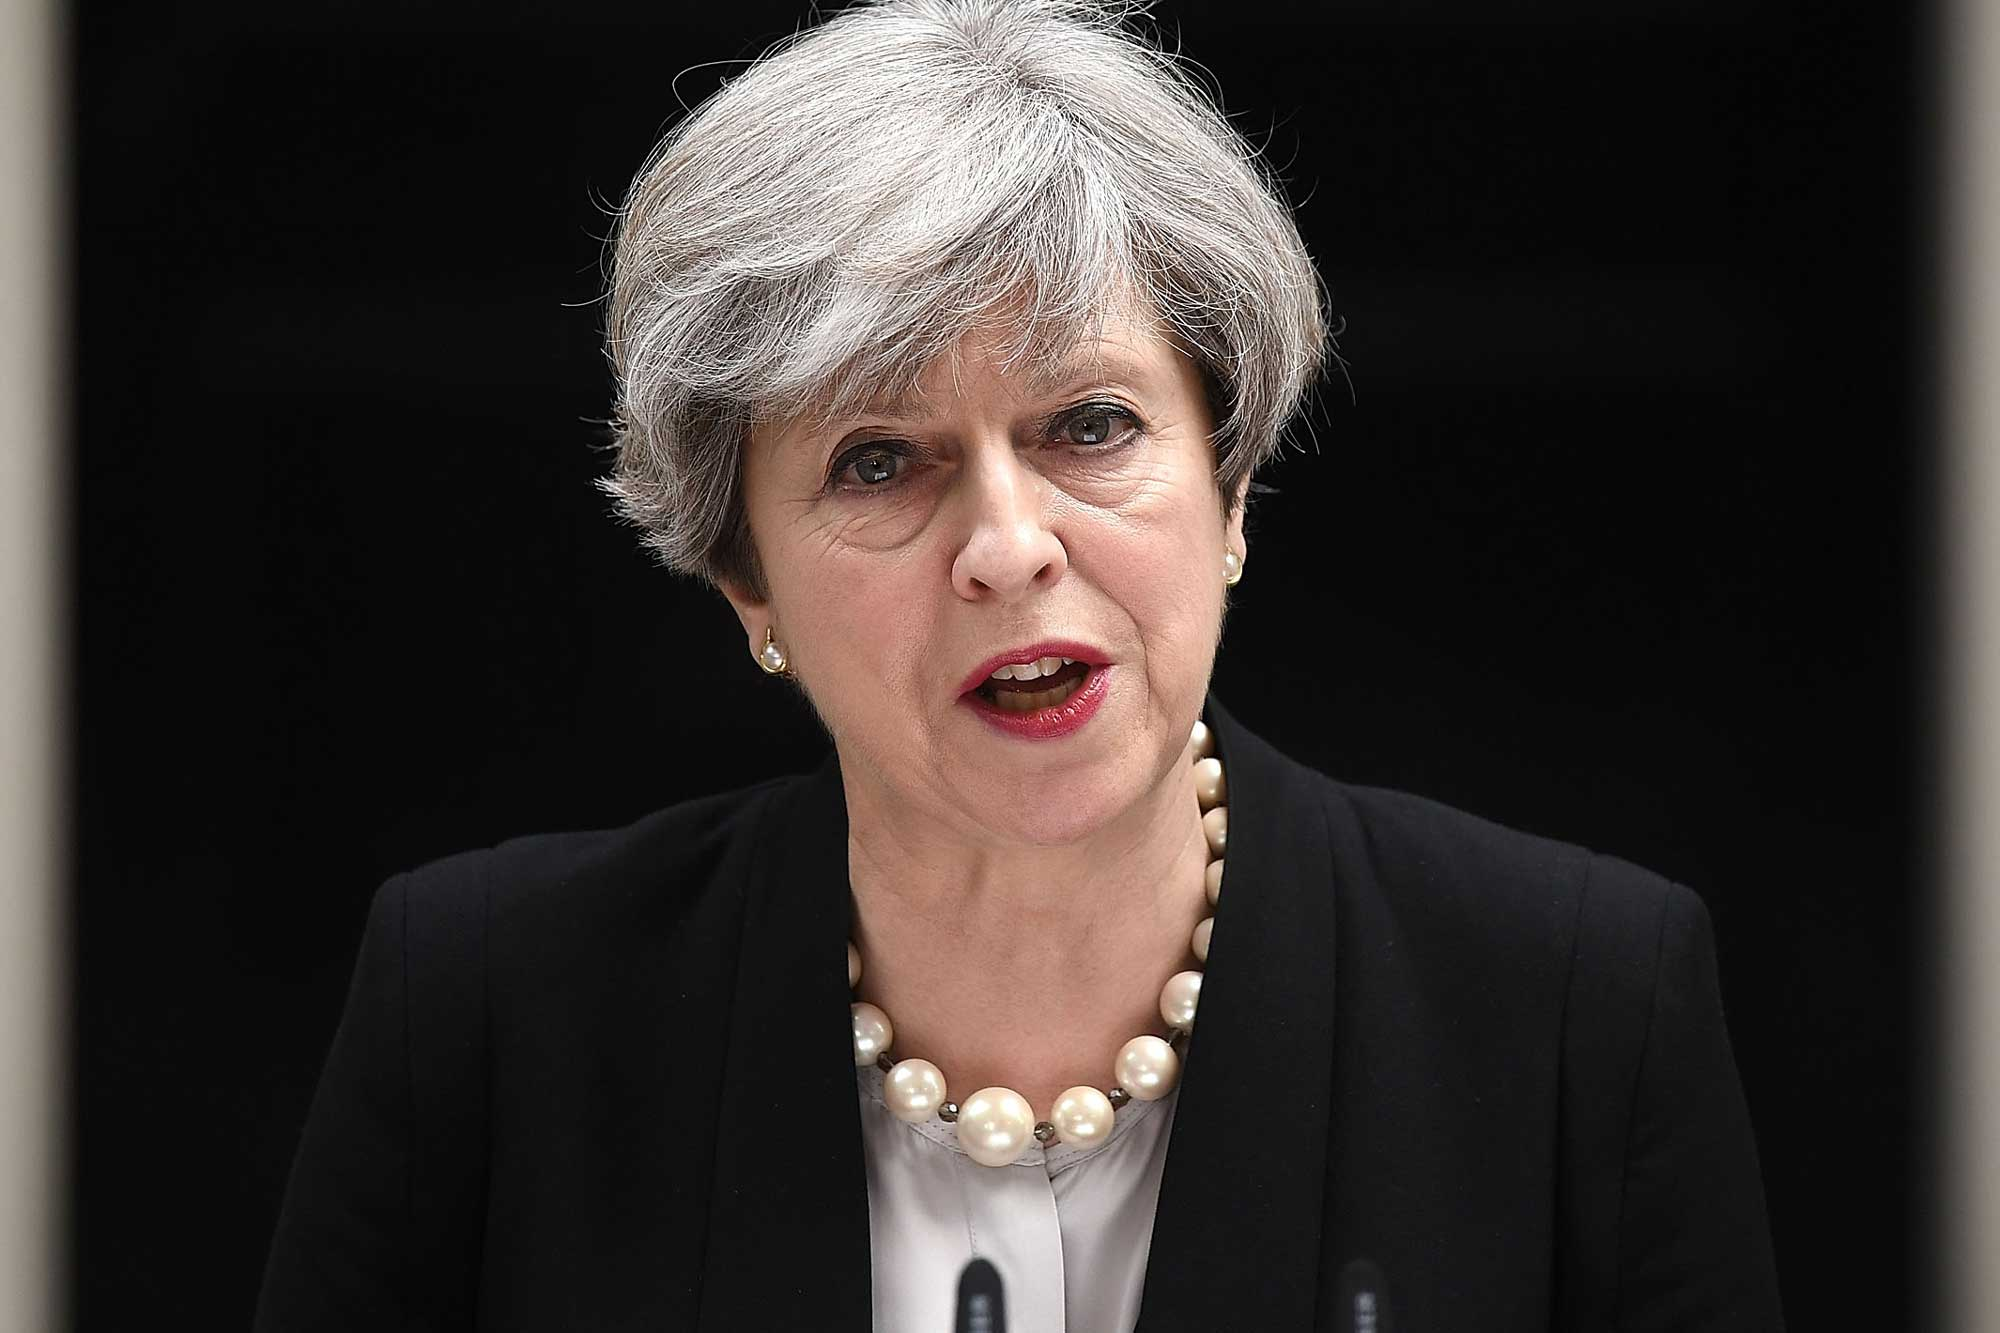 Theresa May Throws Down Gauntlet To Russia Expels 23 Russian Diplomats After Nerve Agent Attack